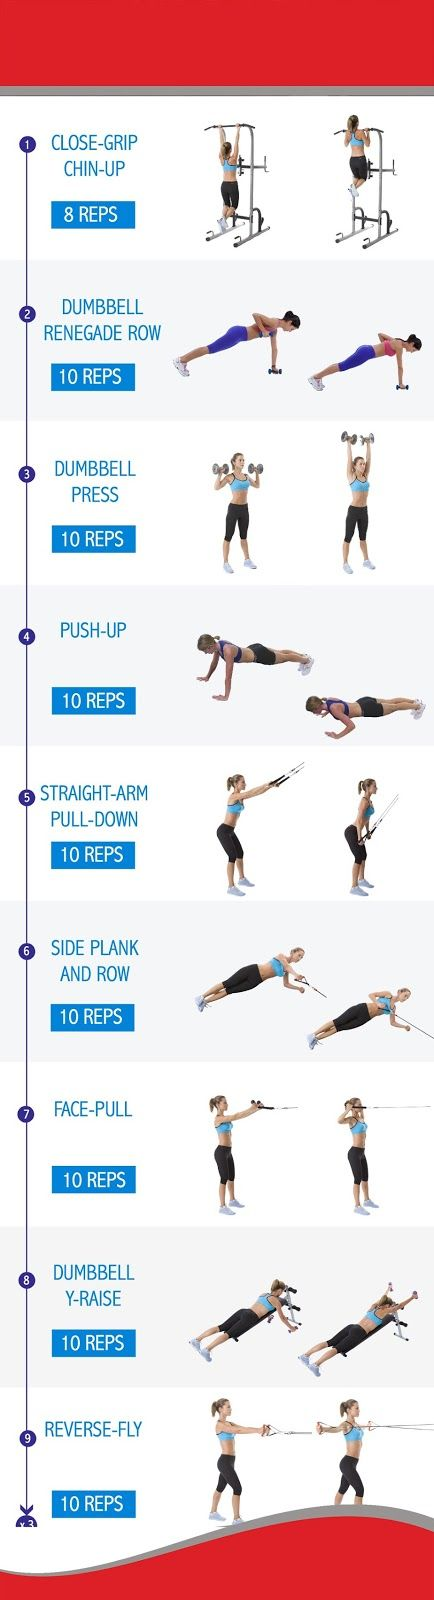 The 25+ best P90x workout ideas on Pinterest P90 workout, P90x - workout tracking sheet